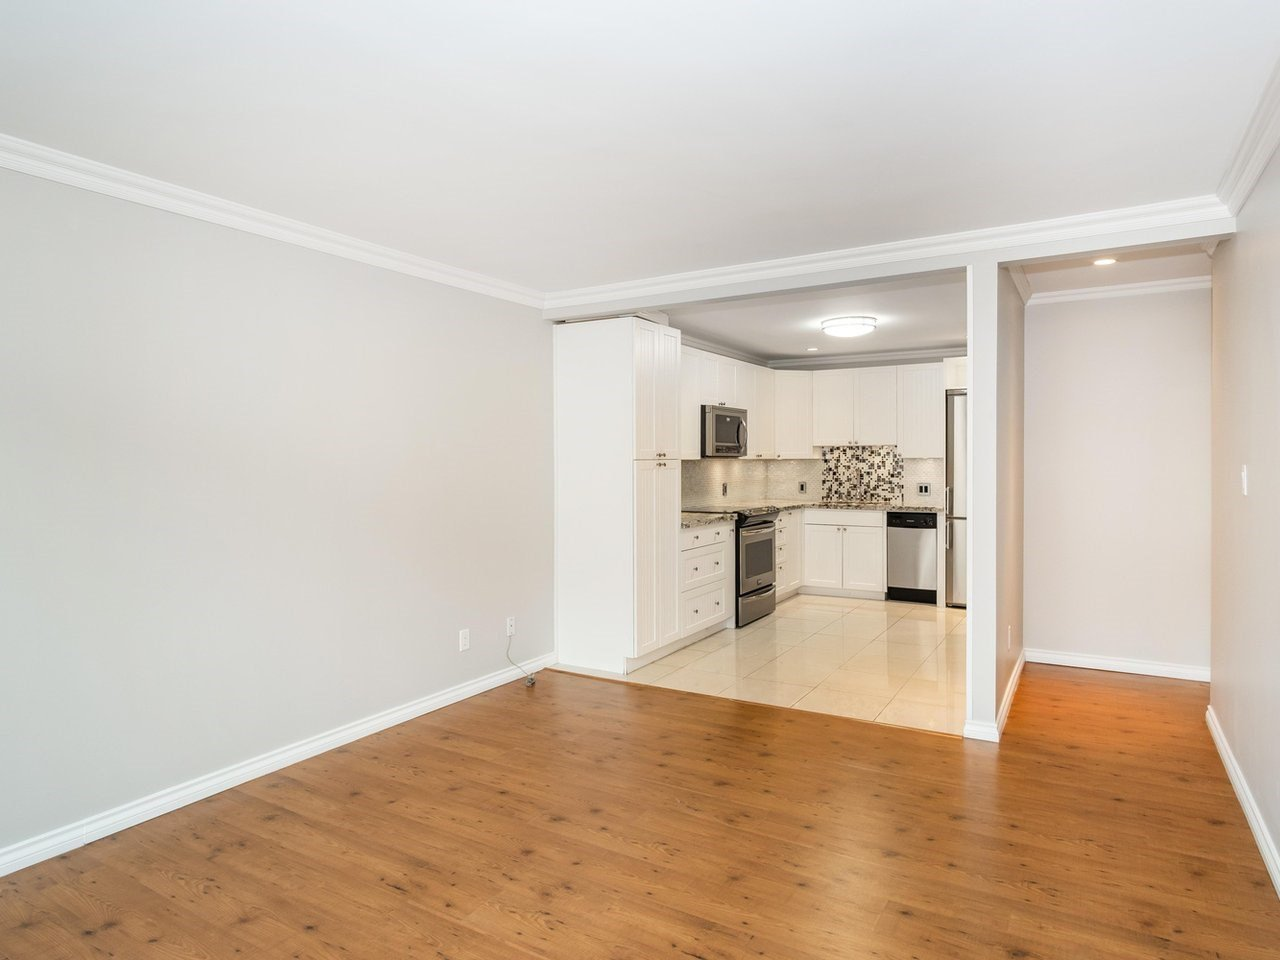 "Photo 5: Photos: 113 8680 FREMLIN Street in Vancouver: Marpole Condo for sale in ""COLONIAL ARMS"" (Vancouver West)  : MLS®# R2416429"